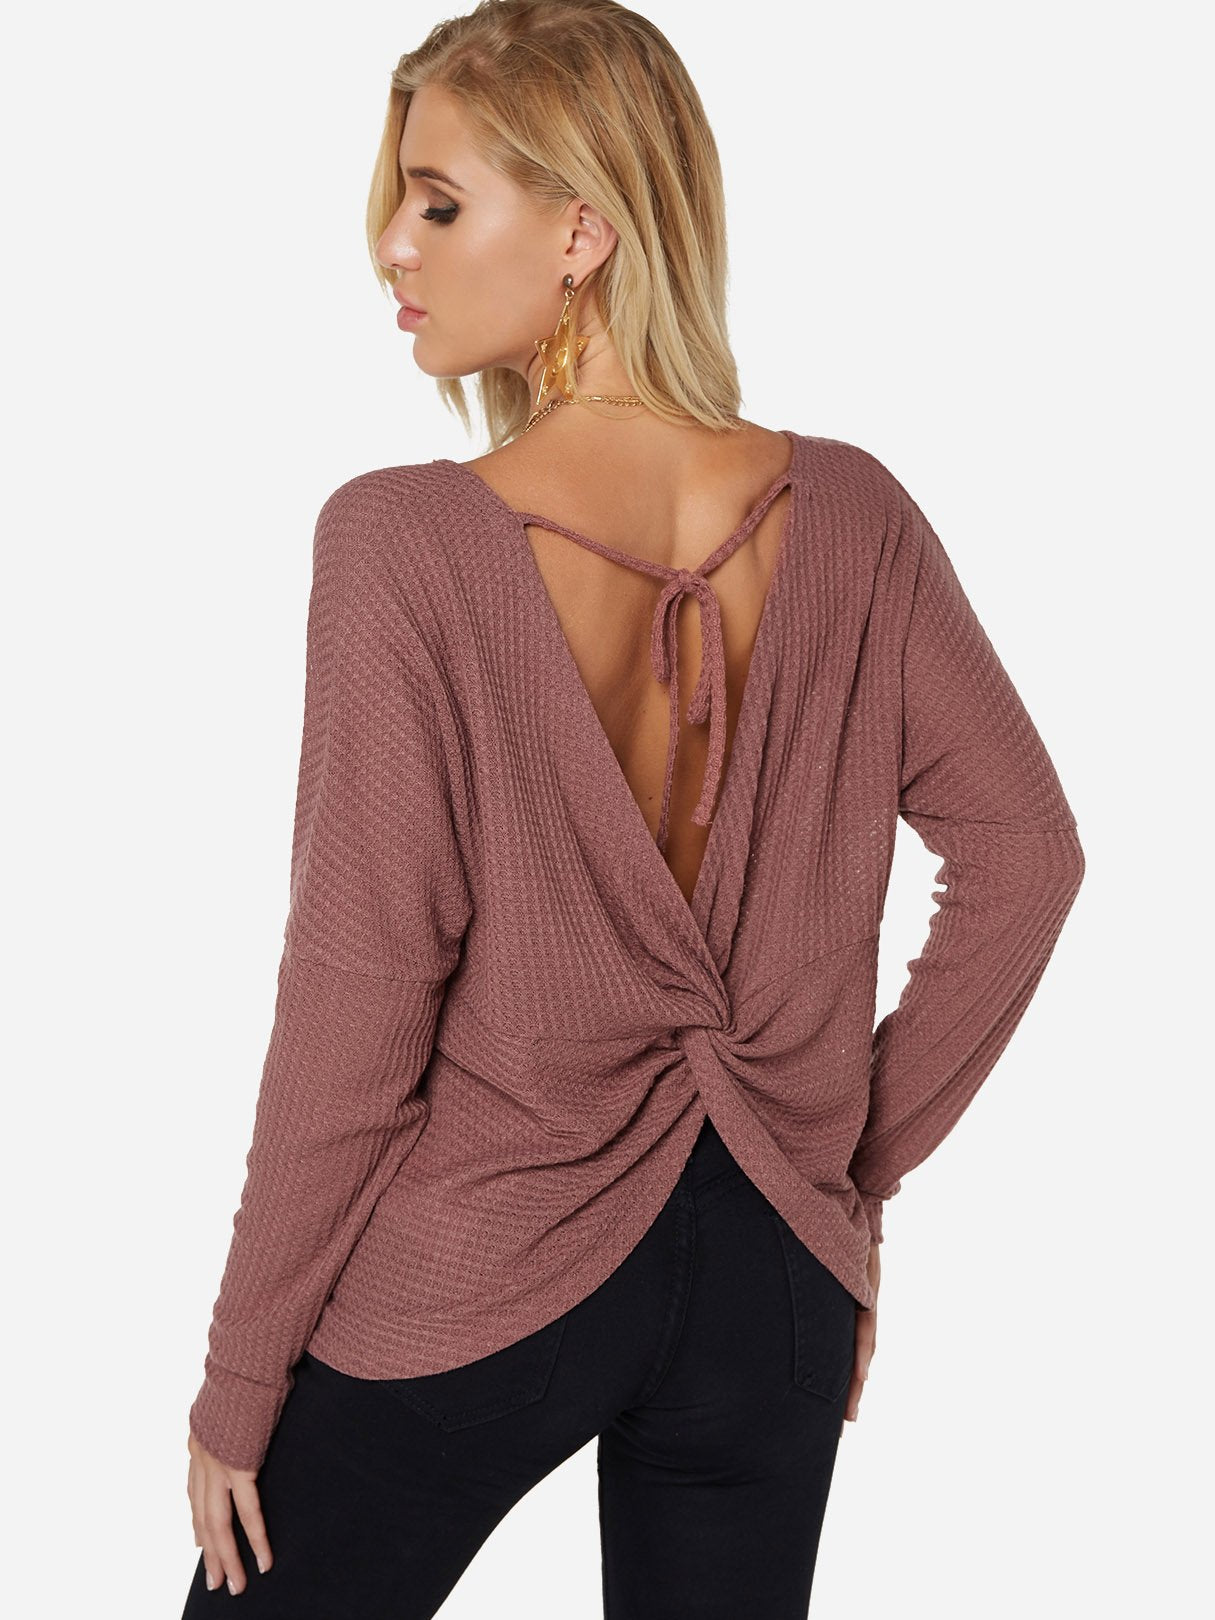 Backless T-Shirts